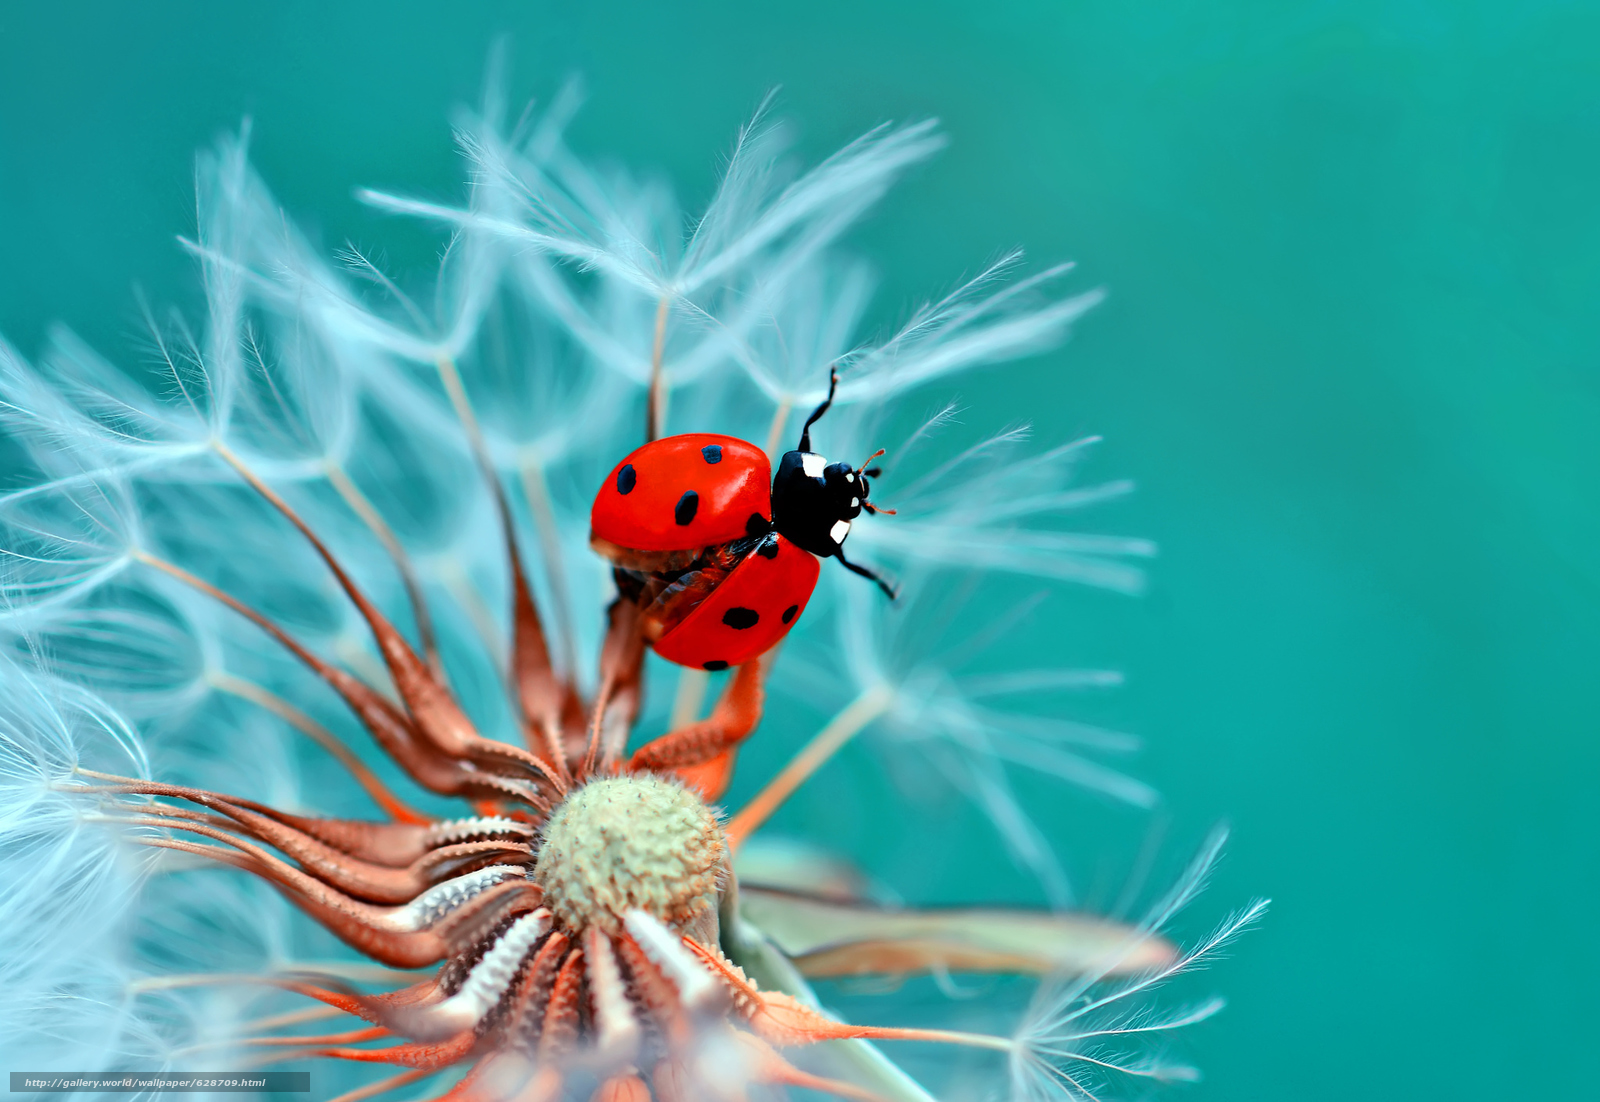 Download wallpaper ladybug,  BEETLE,  insect,  salsify free desktop wallpaper in the resolution 2048x1410 — picture №628709